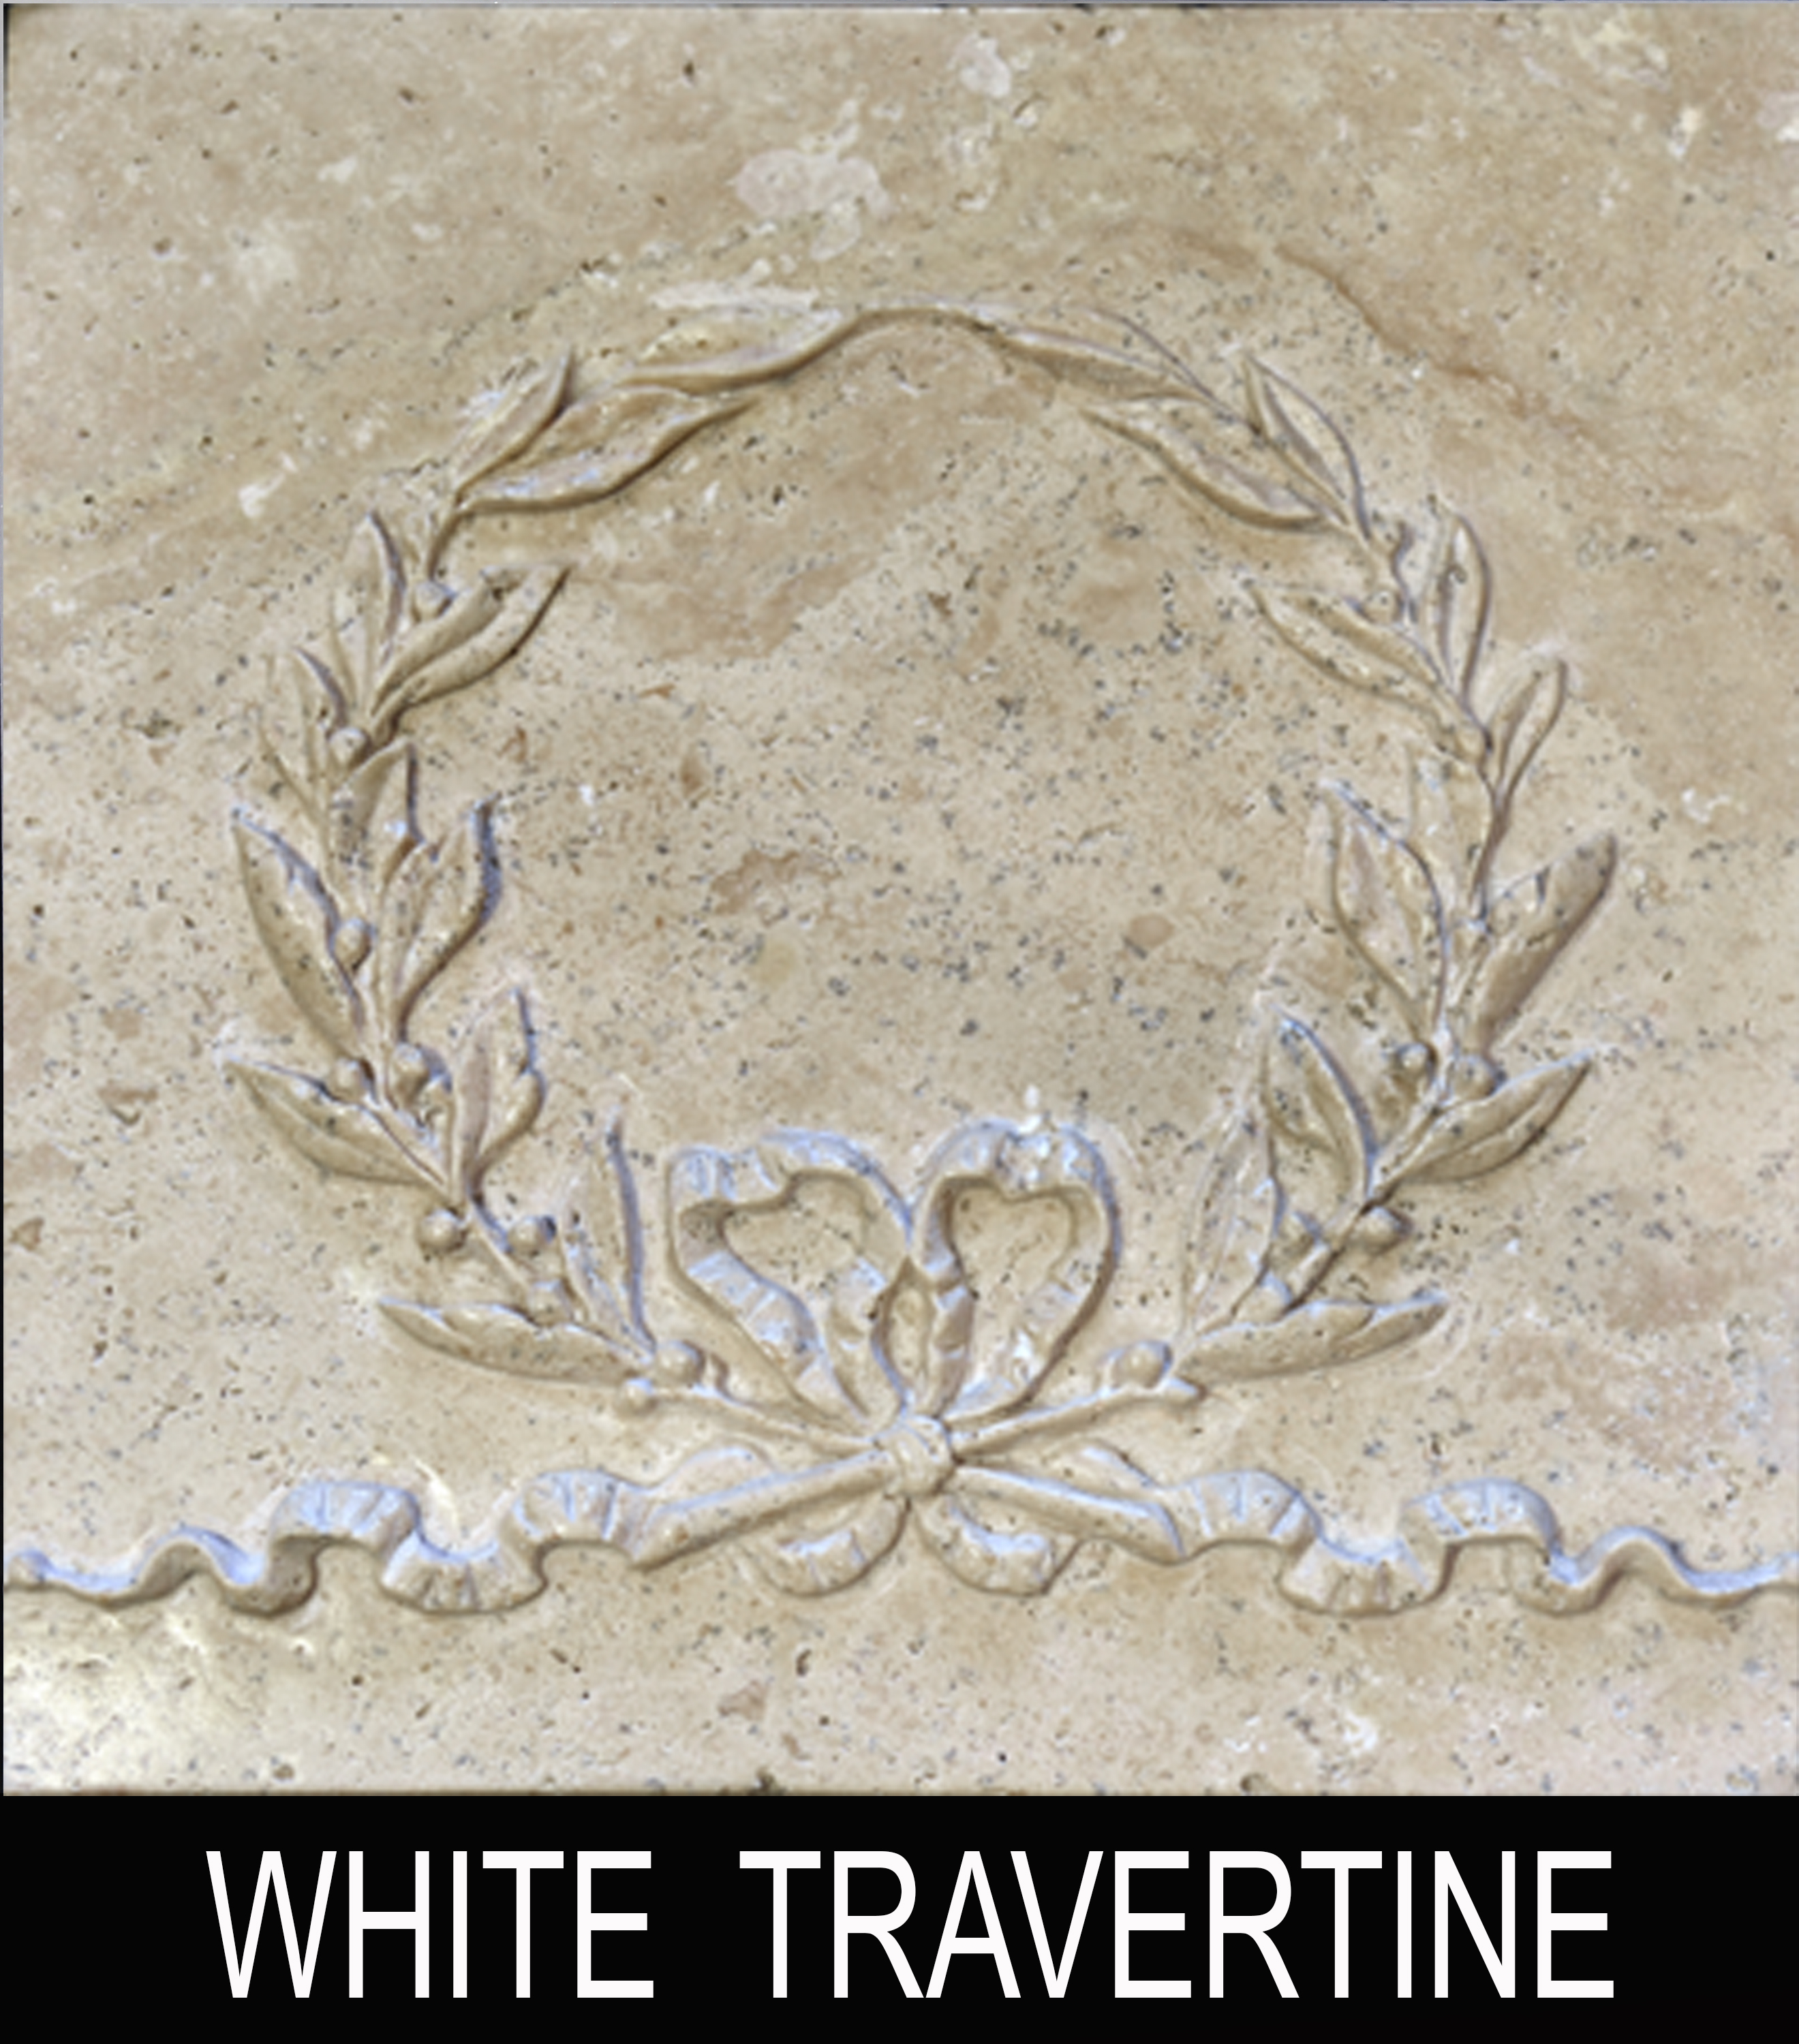 white-travertine-thumnbail.jpg